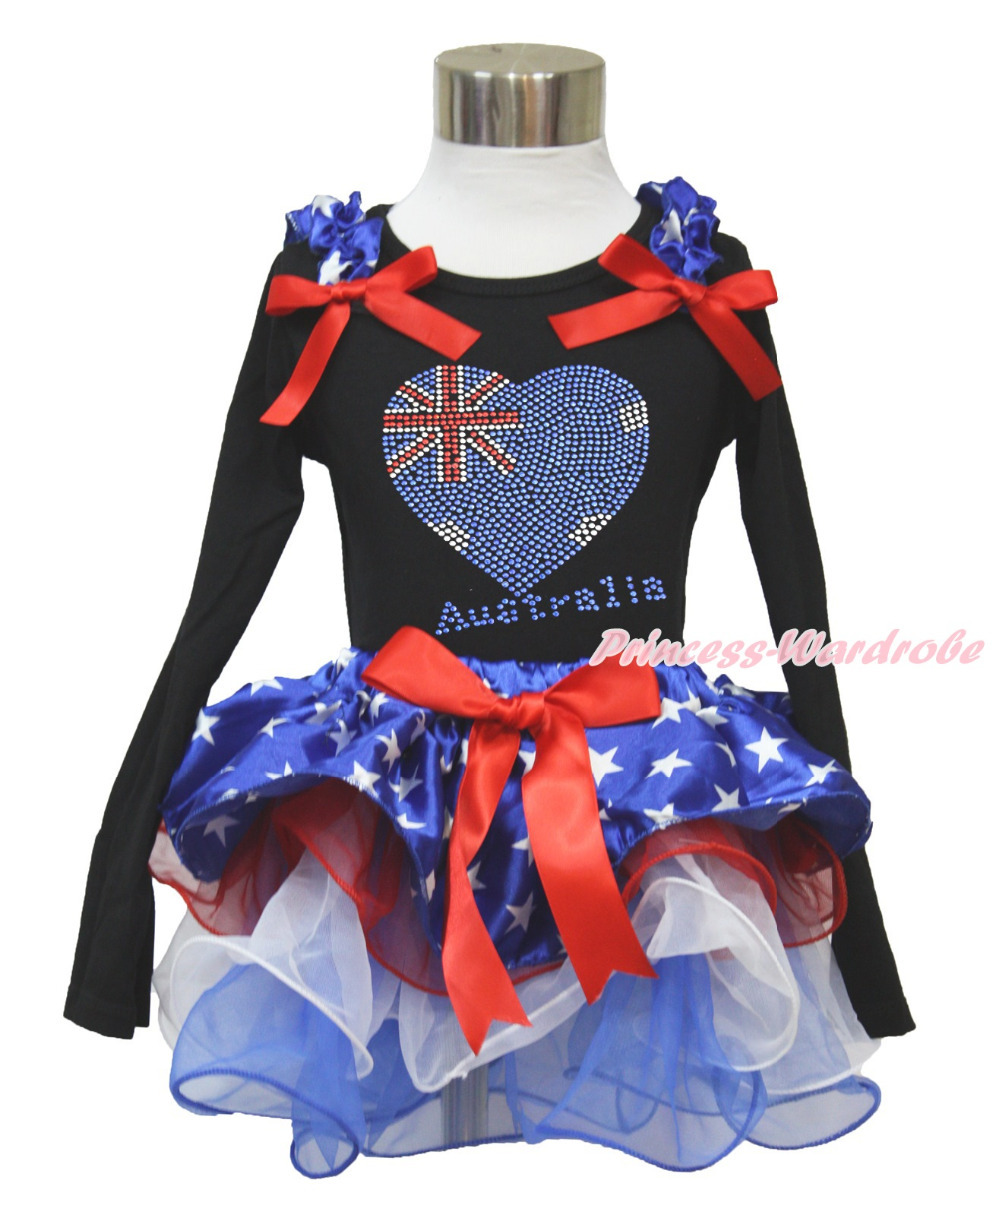 4th July Rhinestone Australia Heart Black L/S Top Patriotic Star Red White Petal Pettiskirt Girl NB-8Year MAMH232 white pettiskirt with patriotic america heart white ruffles